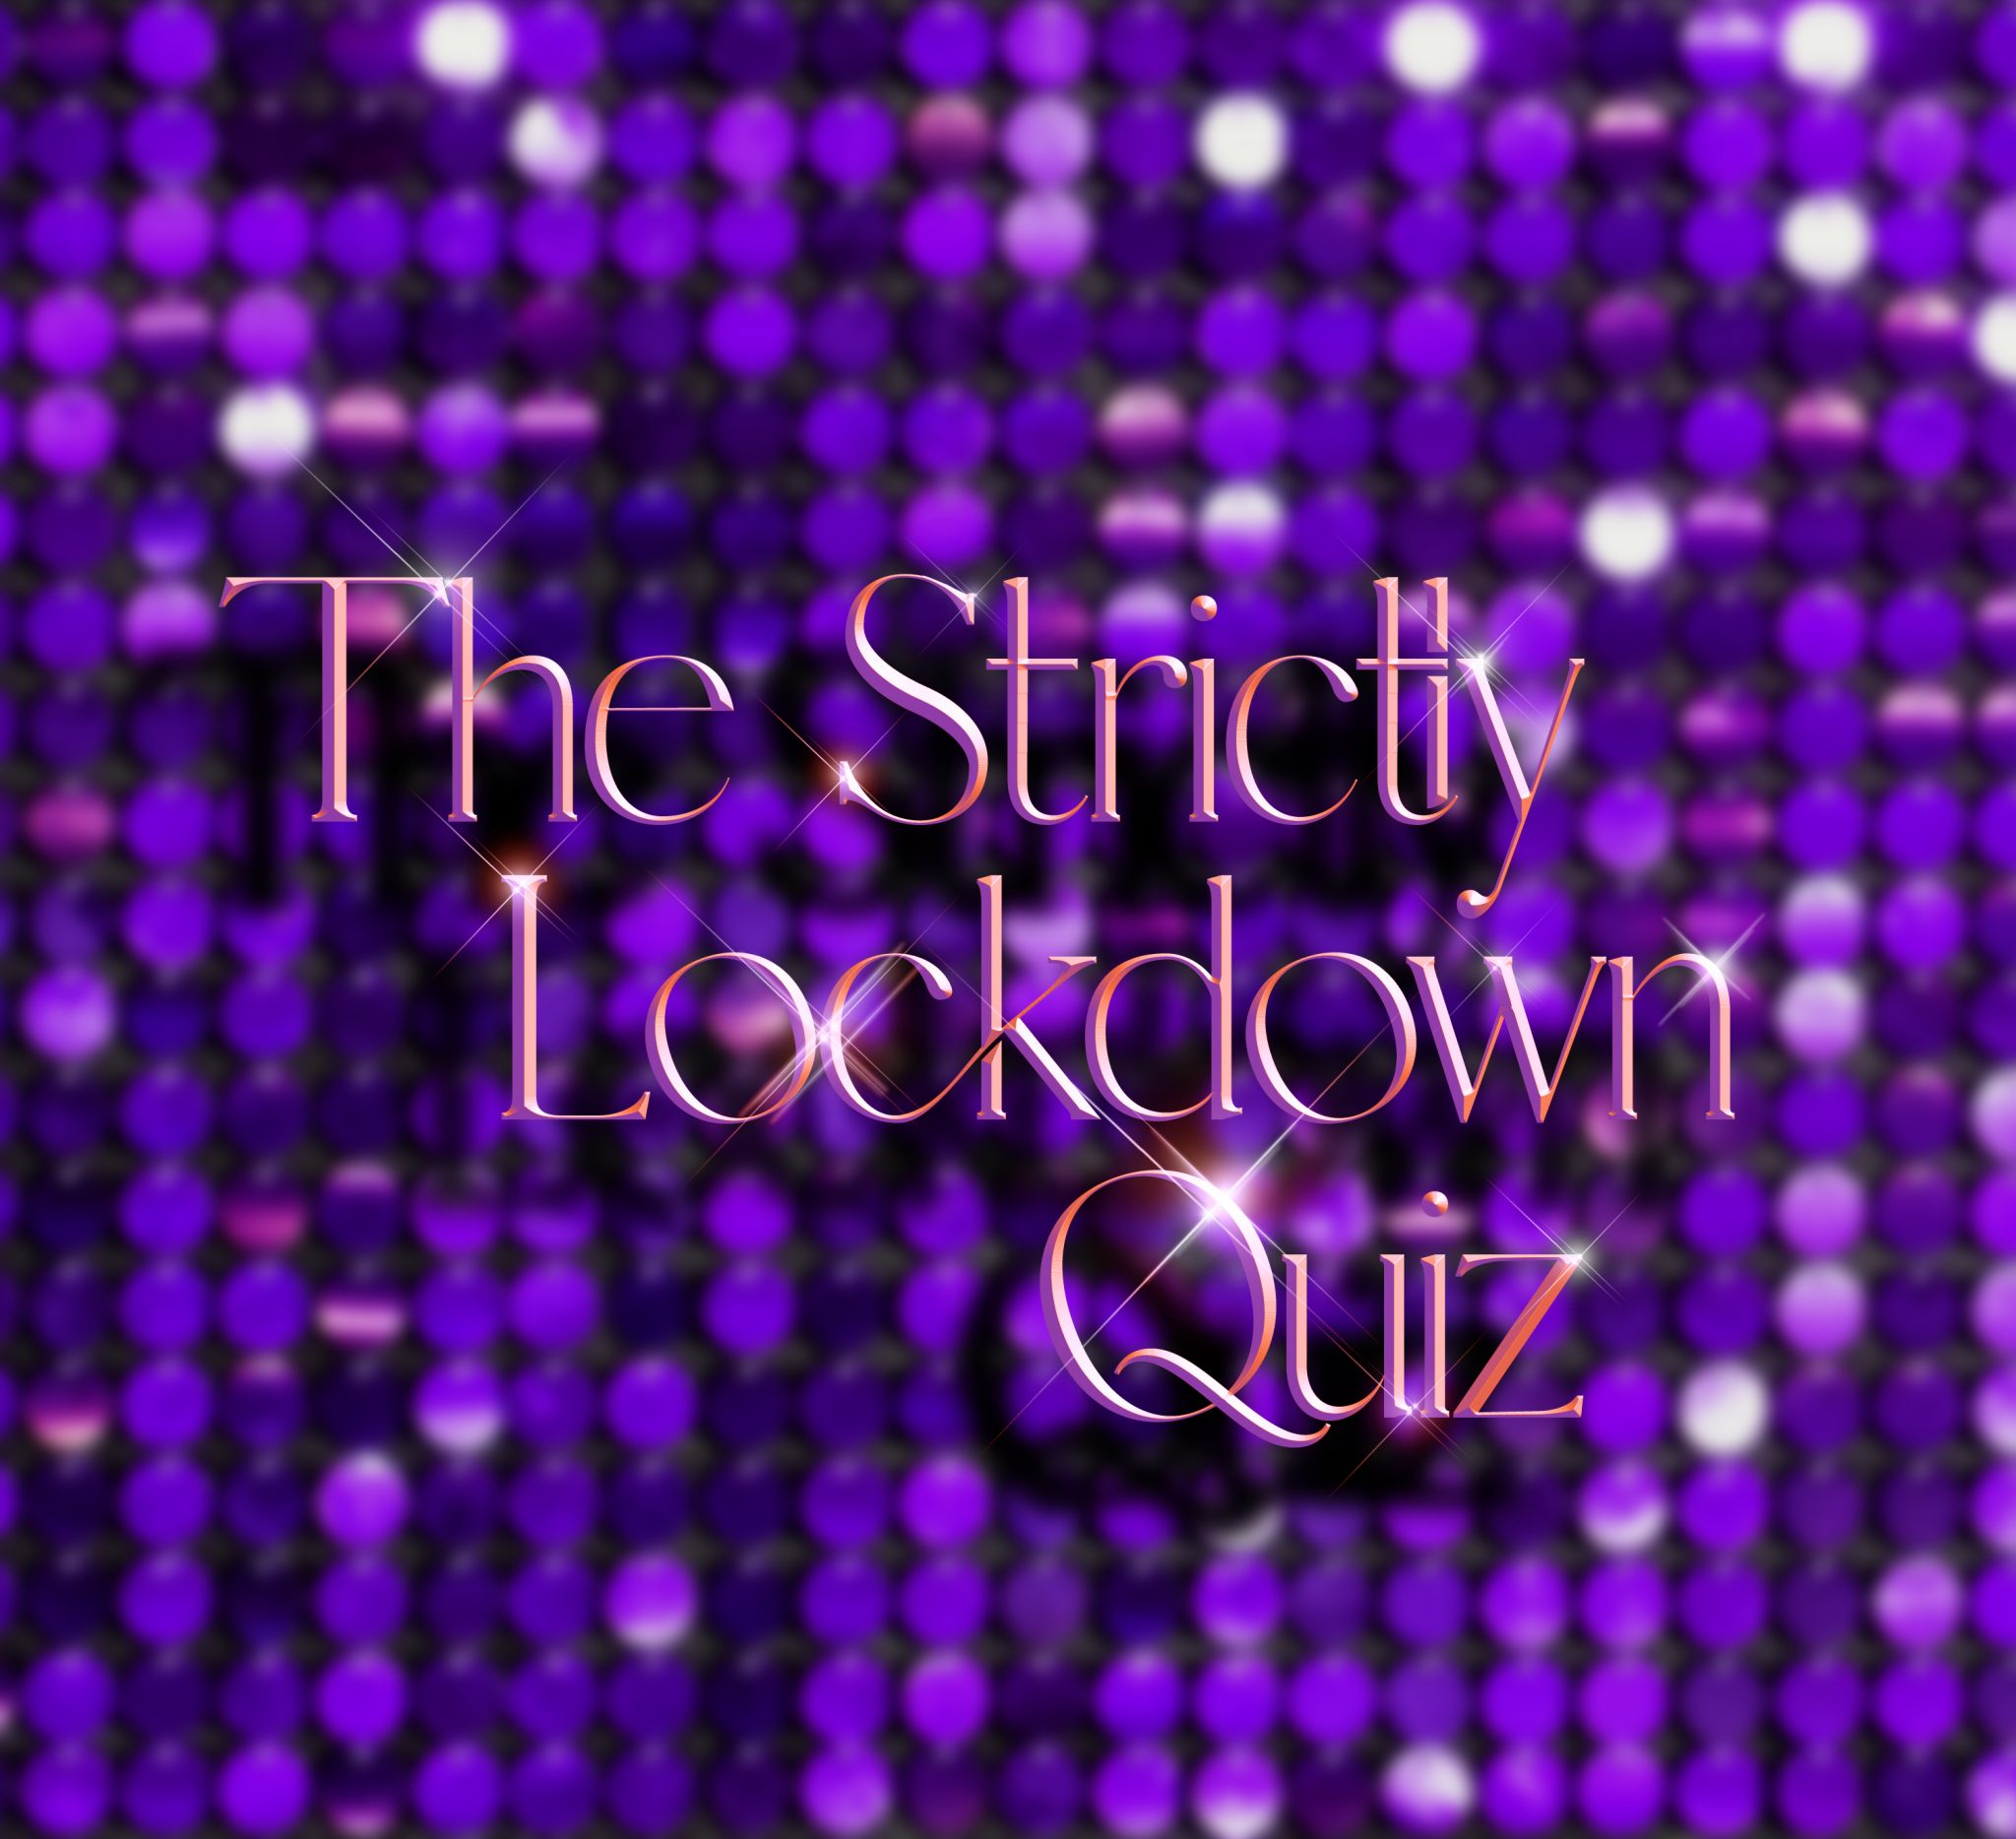 Make Events | Corporate and Virtual Events Company Manchester | Strictly Lockdown Quiz purple sequin backdrop